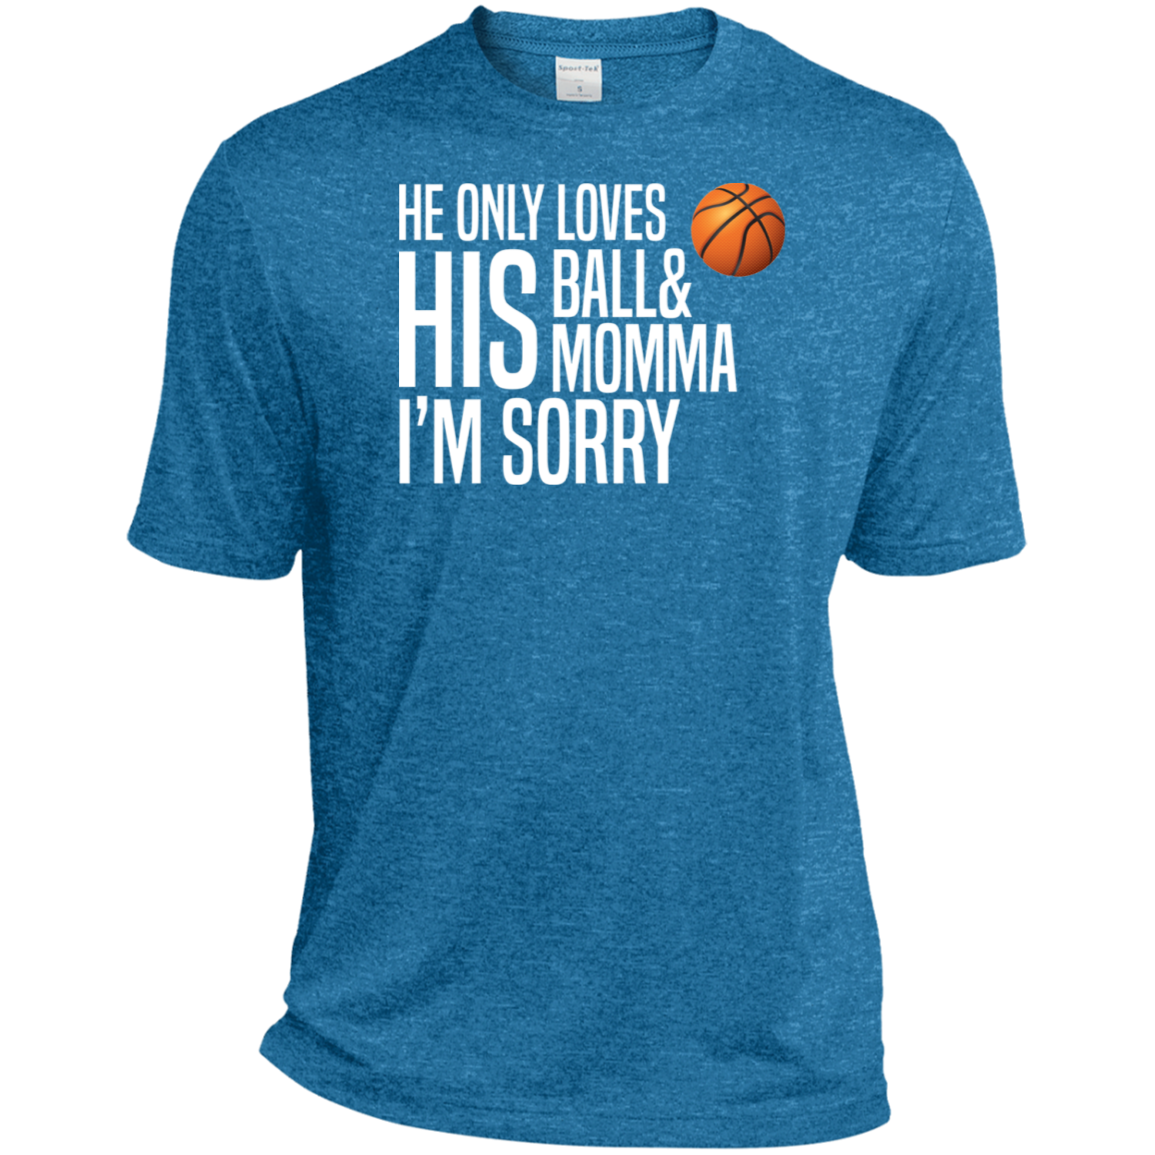 He Only Loves His Basketball and His Momma v2 Sport-Tek Heather Dri-Fit Moisture-Wicking T-Shirt